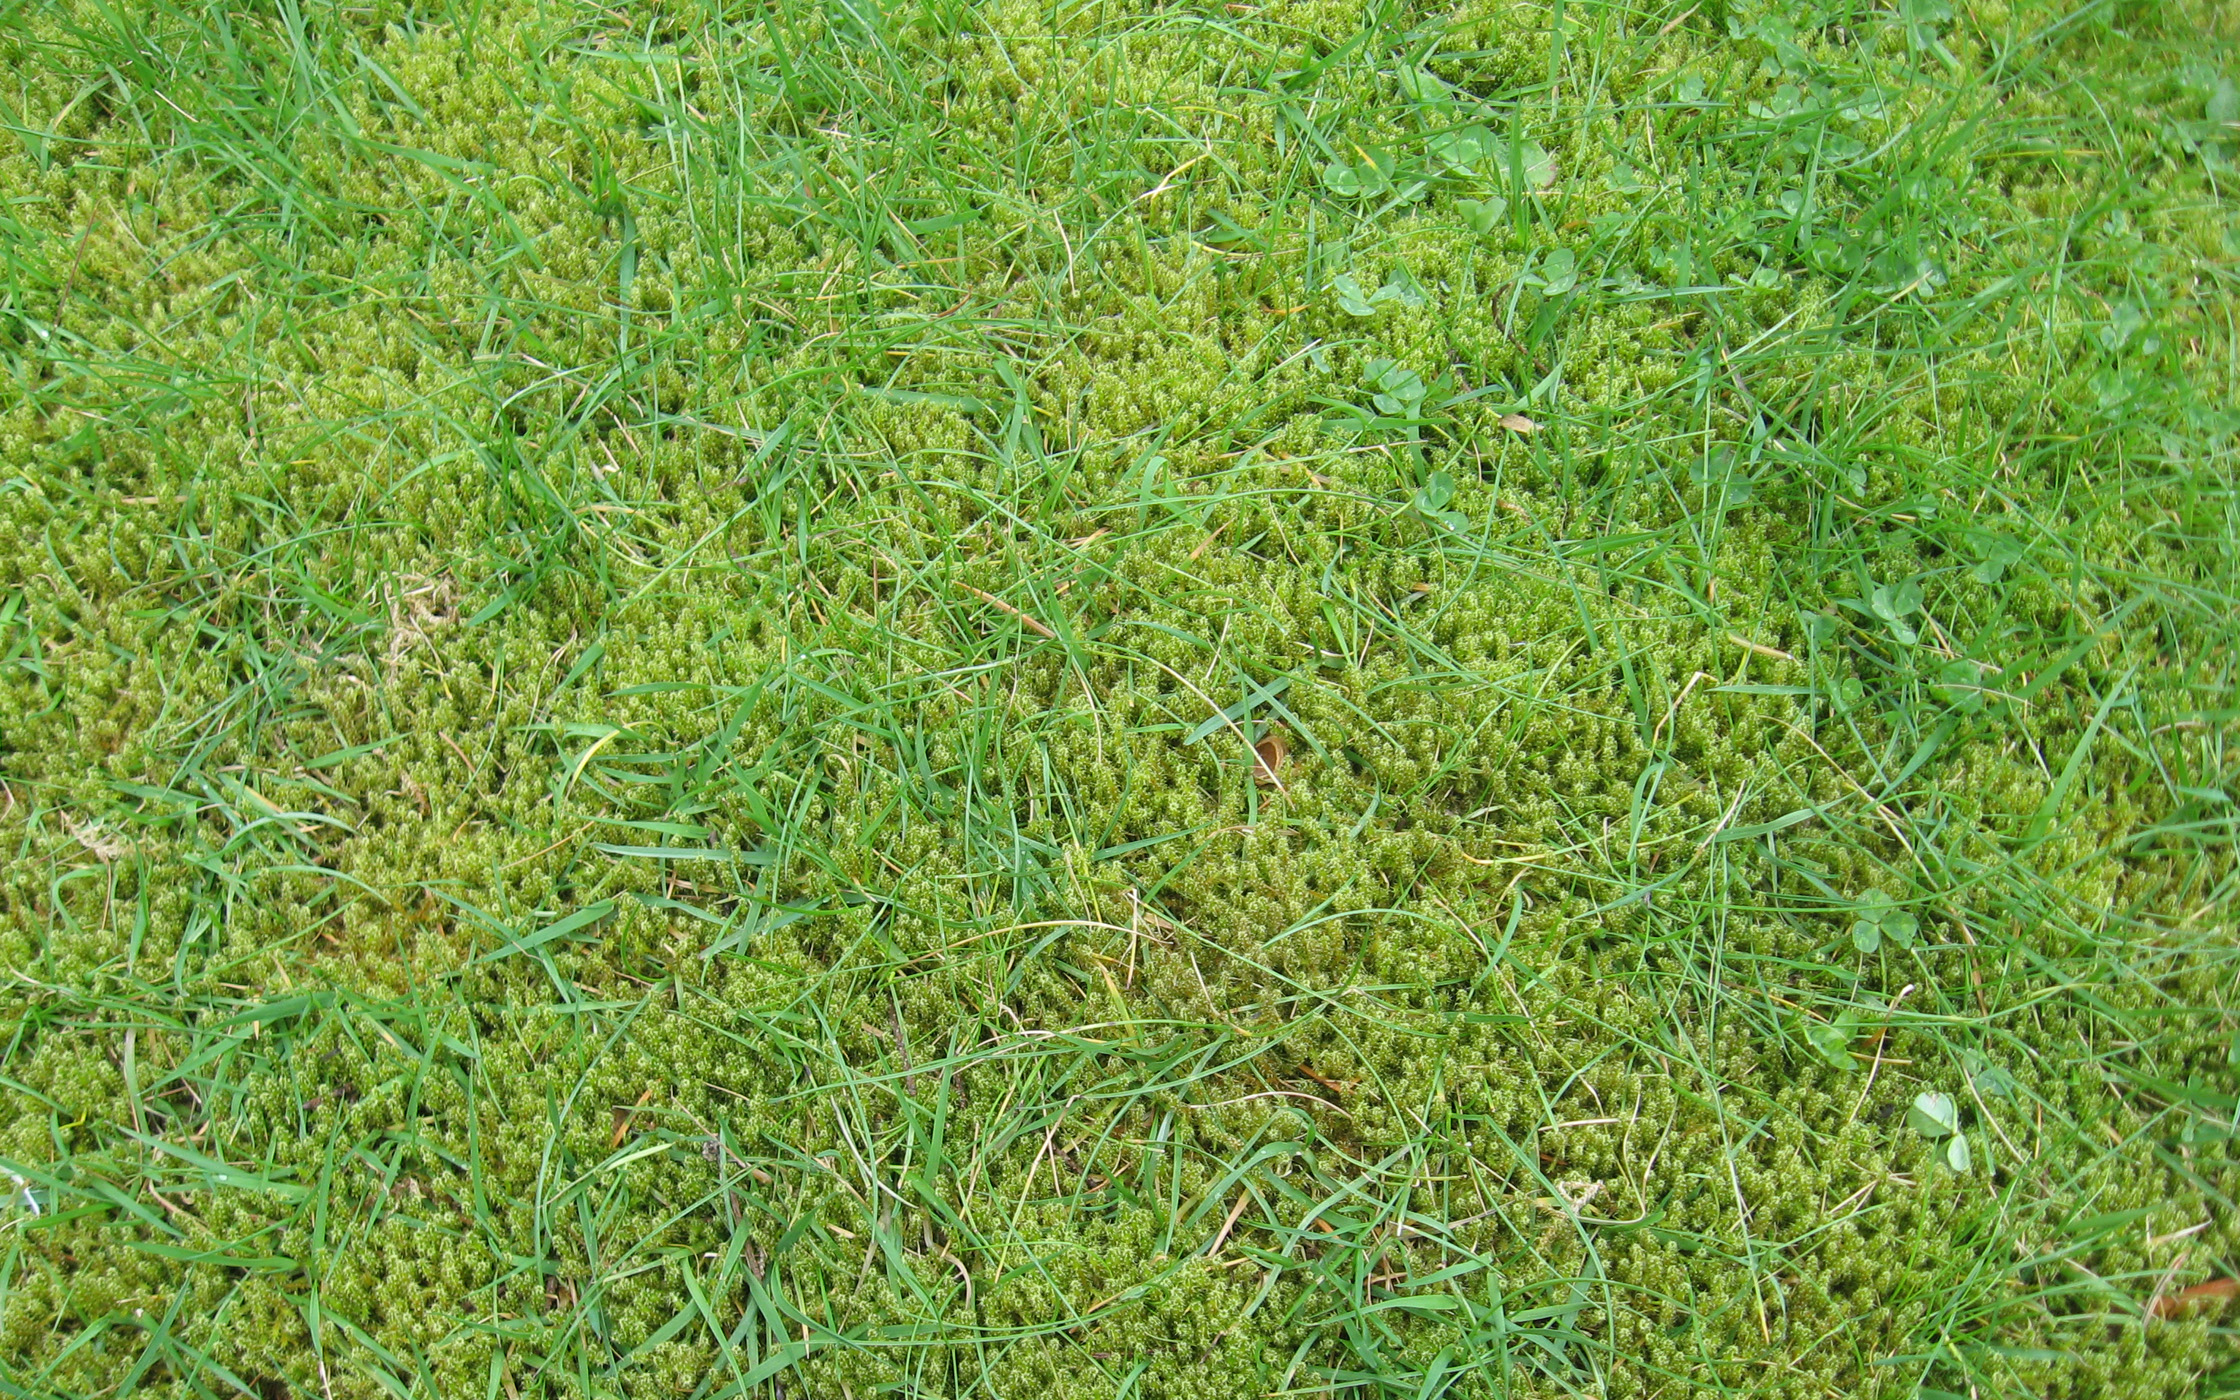 Correcting Lawn Conditions That Favour Moss Growth - Featured Image